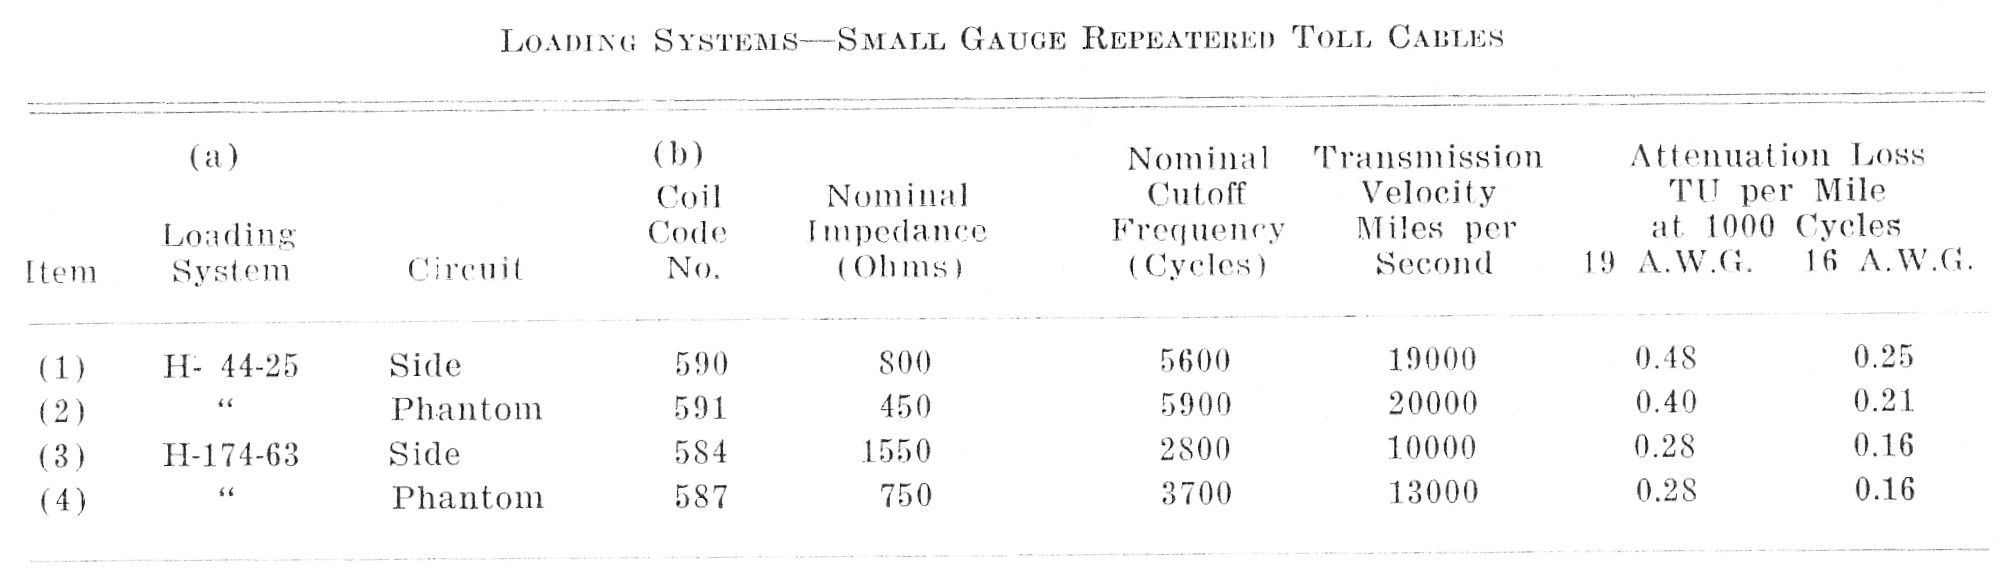 Loading Systms-Small Gauge Repeatered Toll Cables